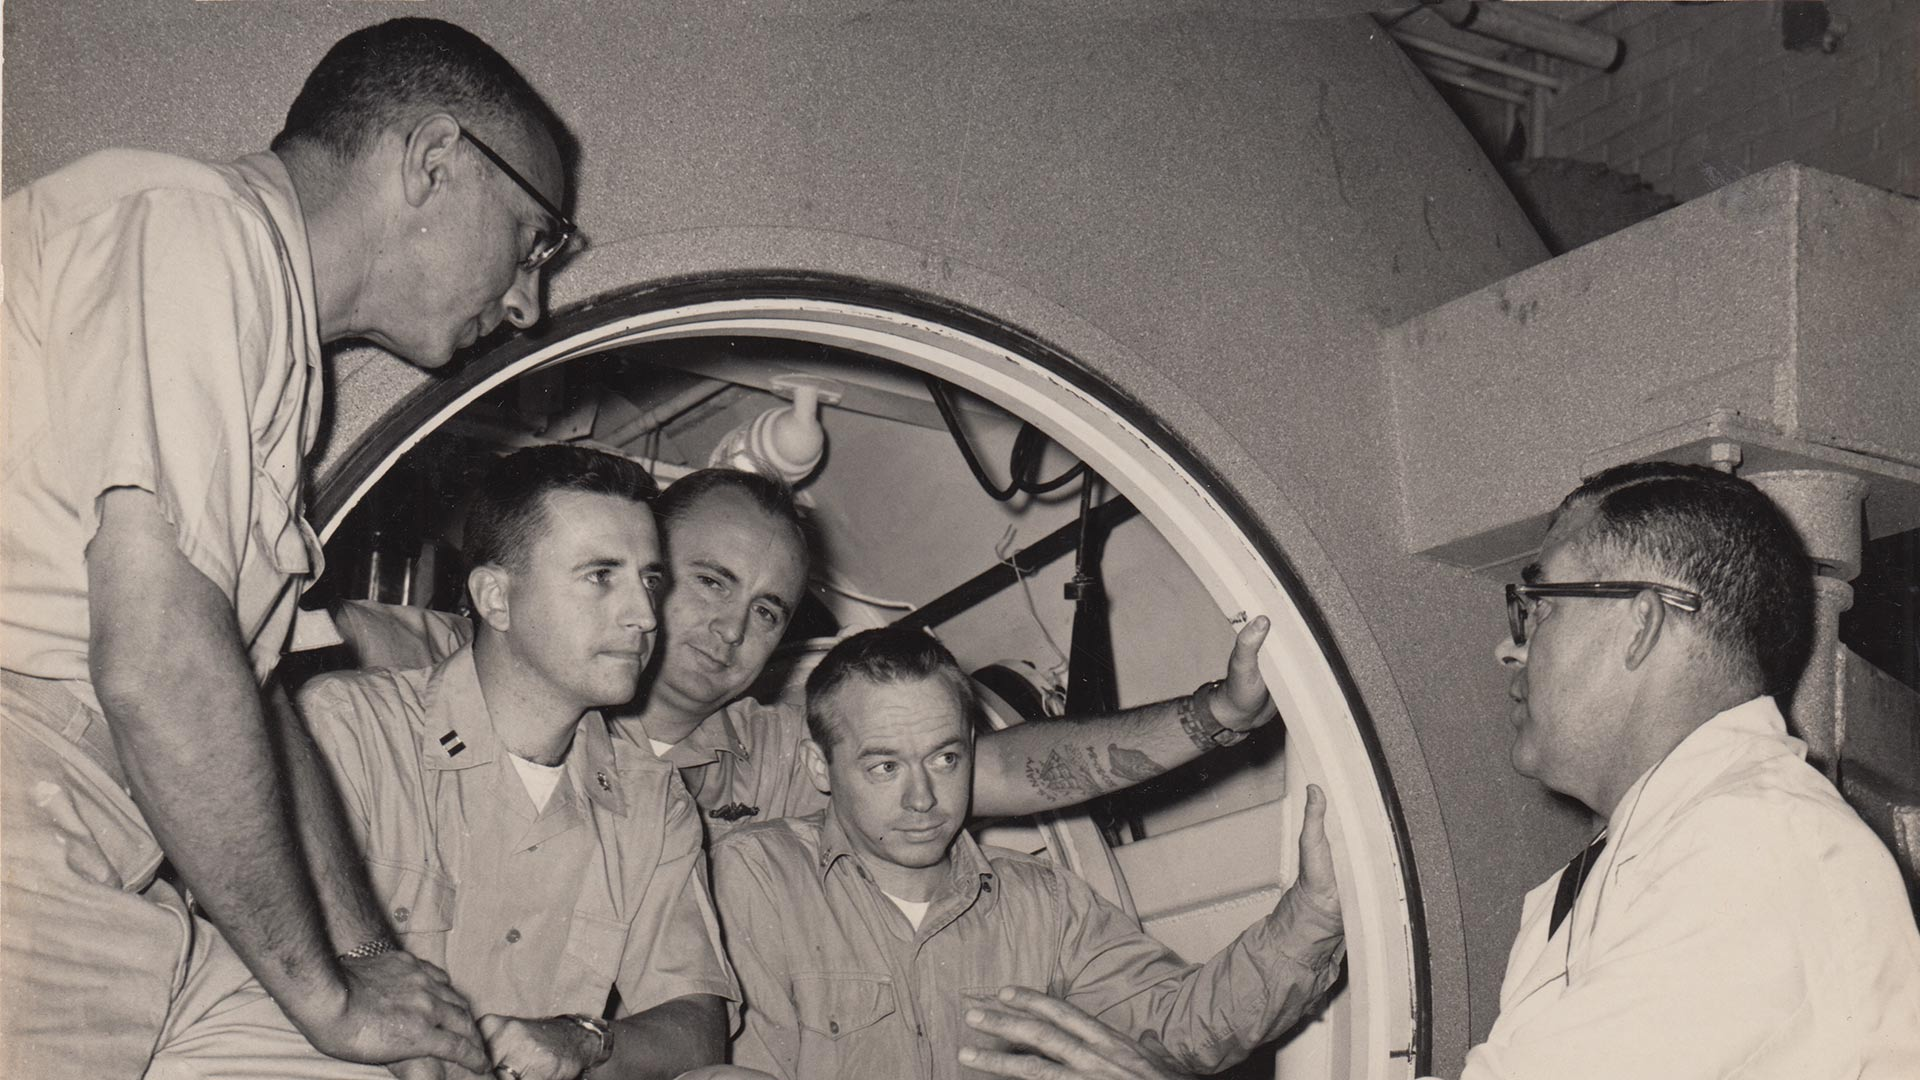 Walter Mazzone, Raymond Lavoi, Bob Barth, Sanders Manning, and George Bond, at the entrance of the Genesis E chamber, 1961.